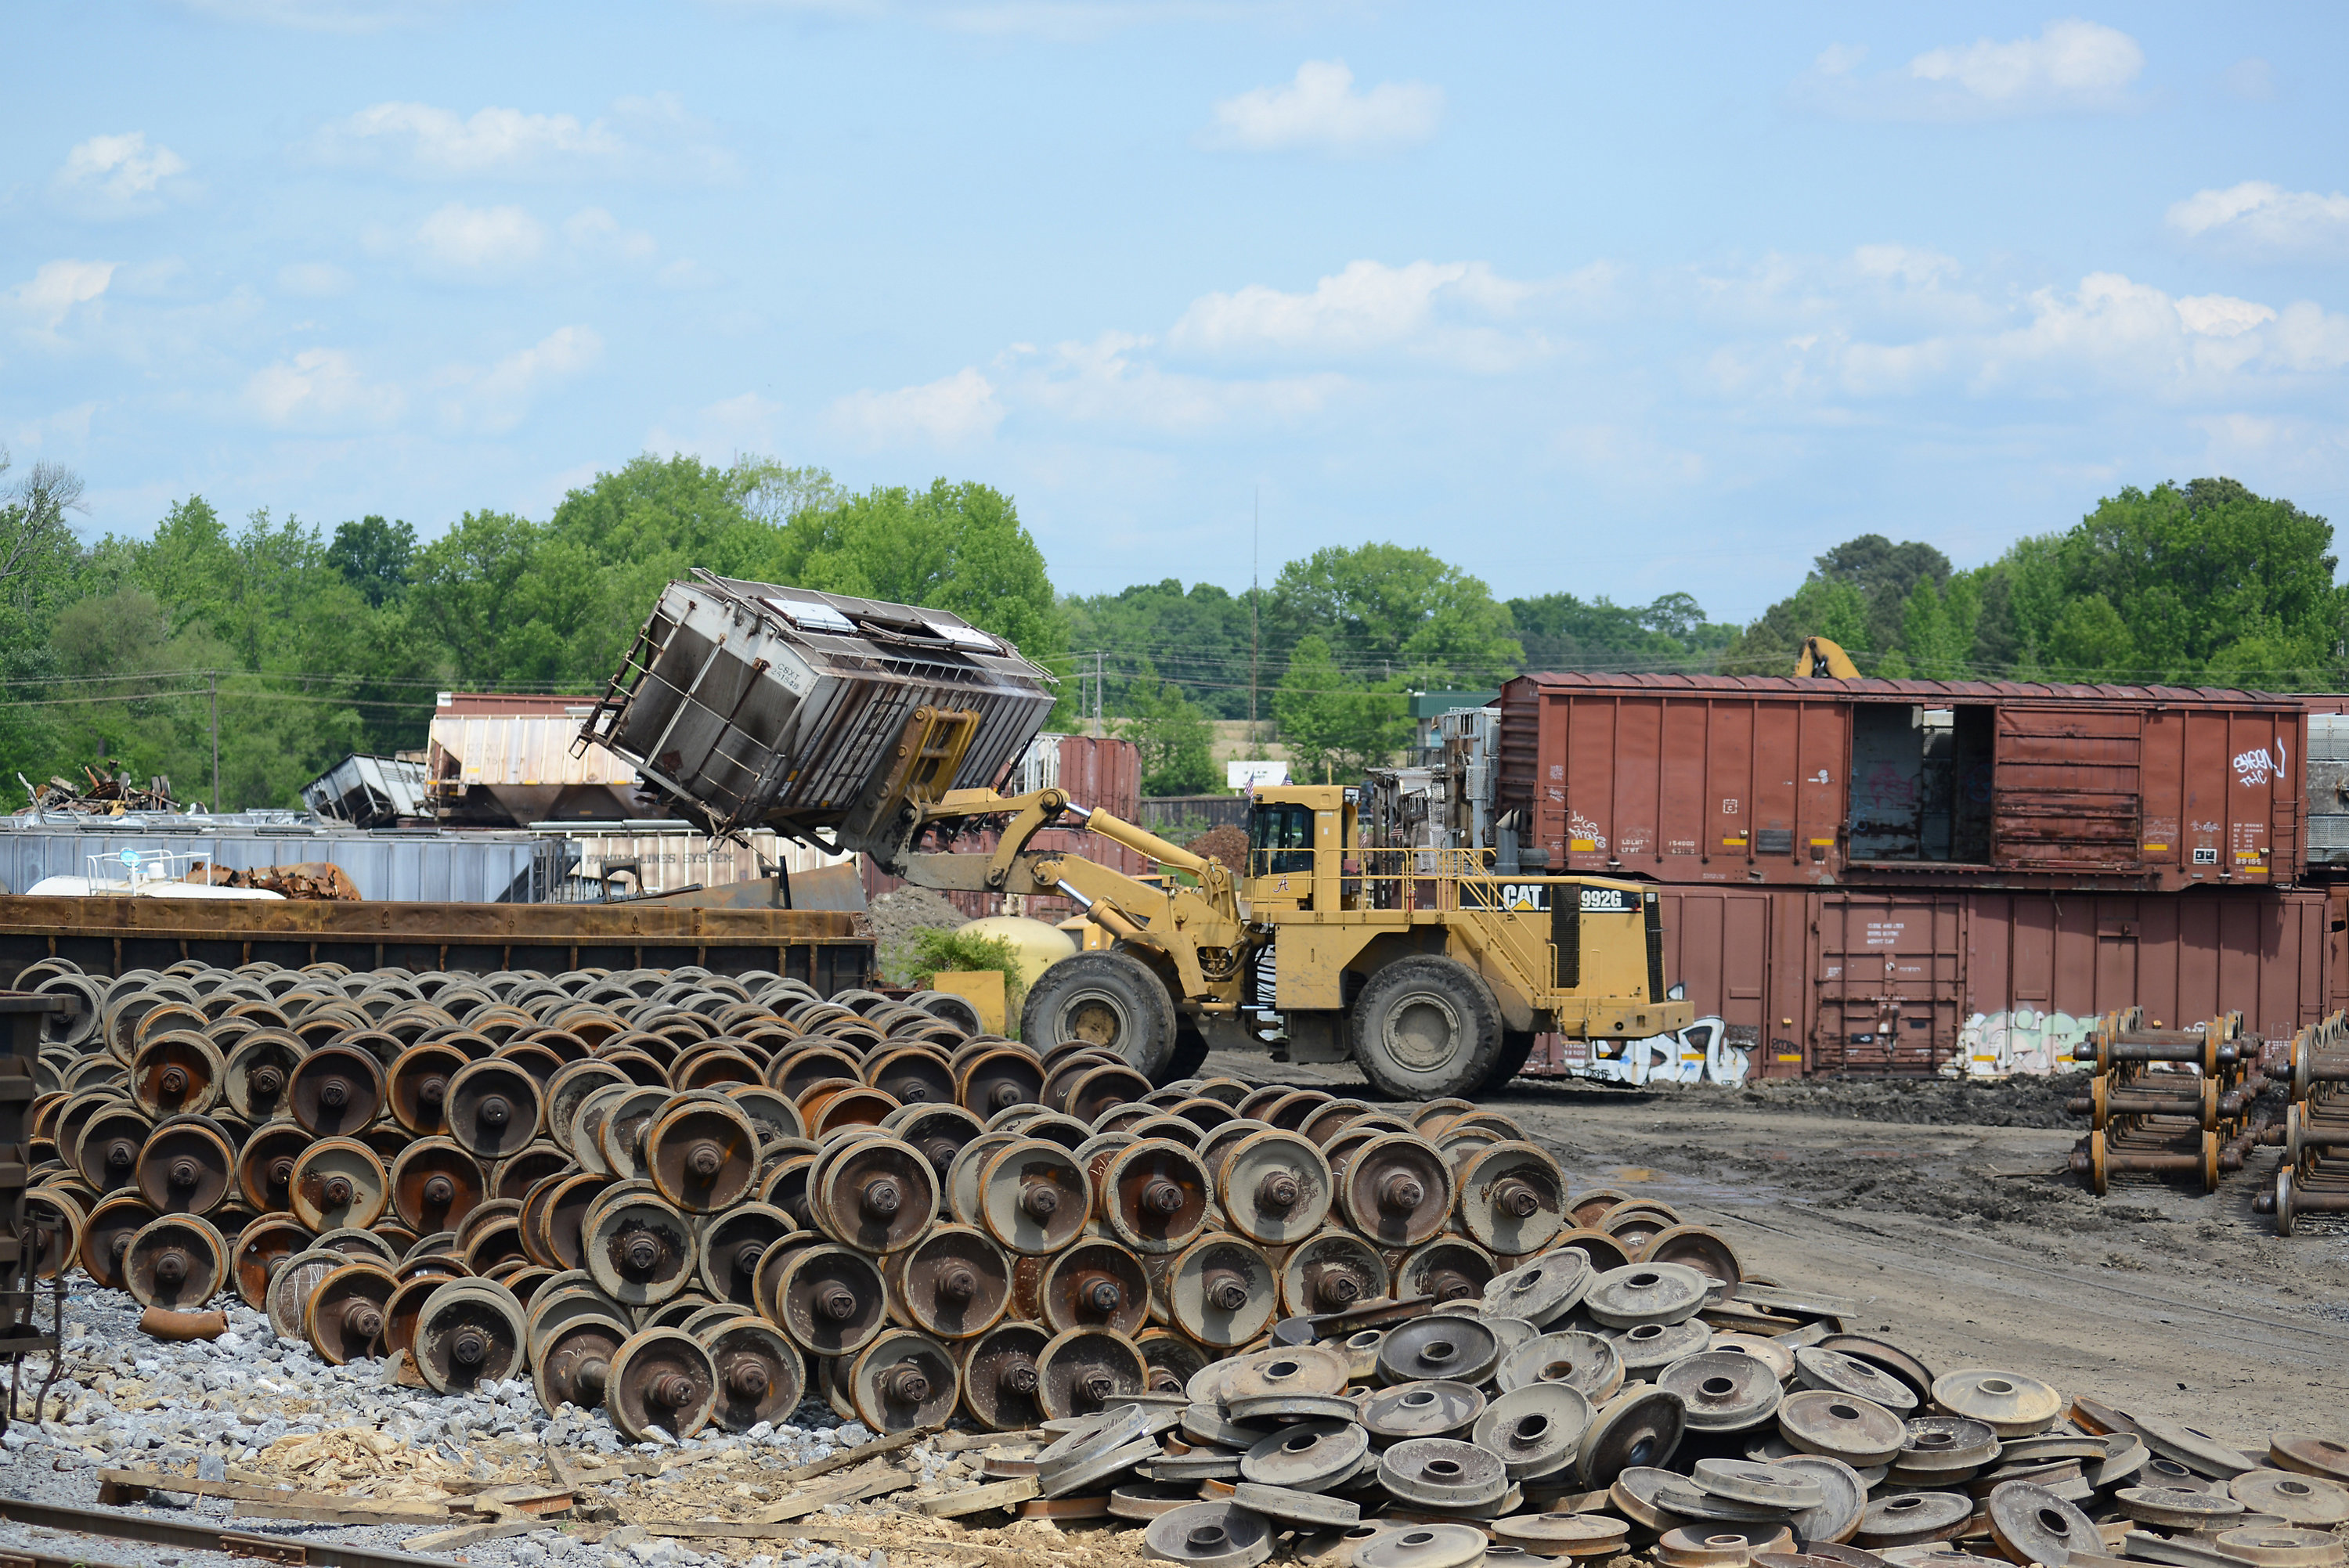 Recycling, sustainability, derailment services